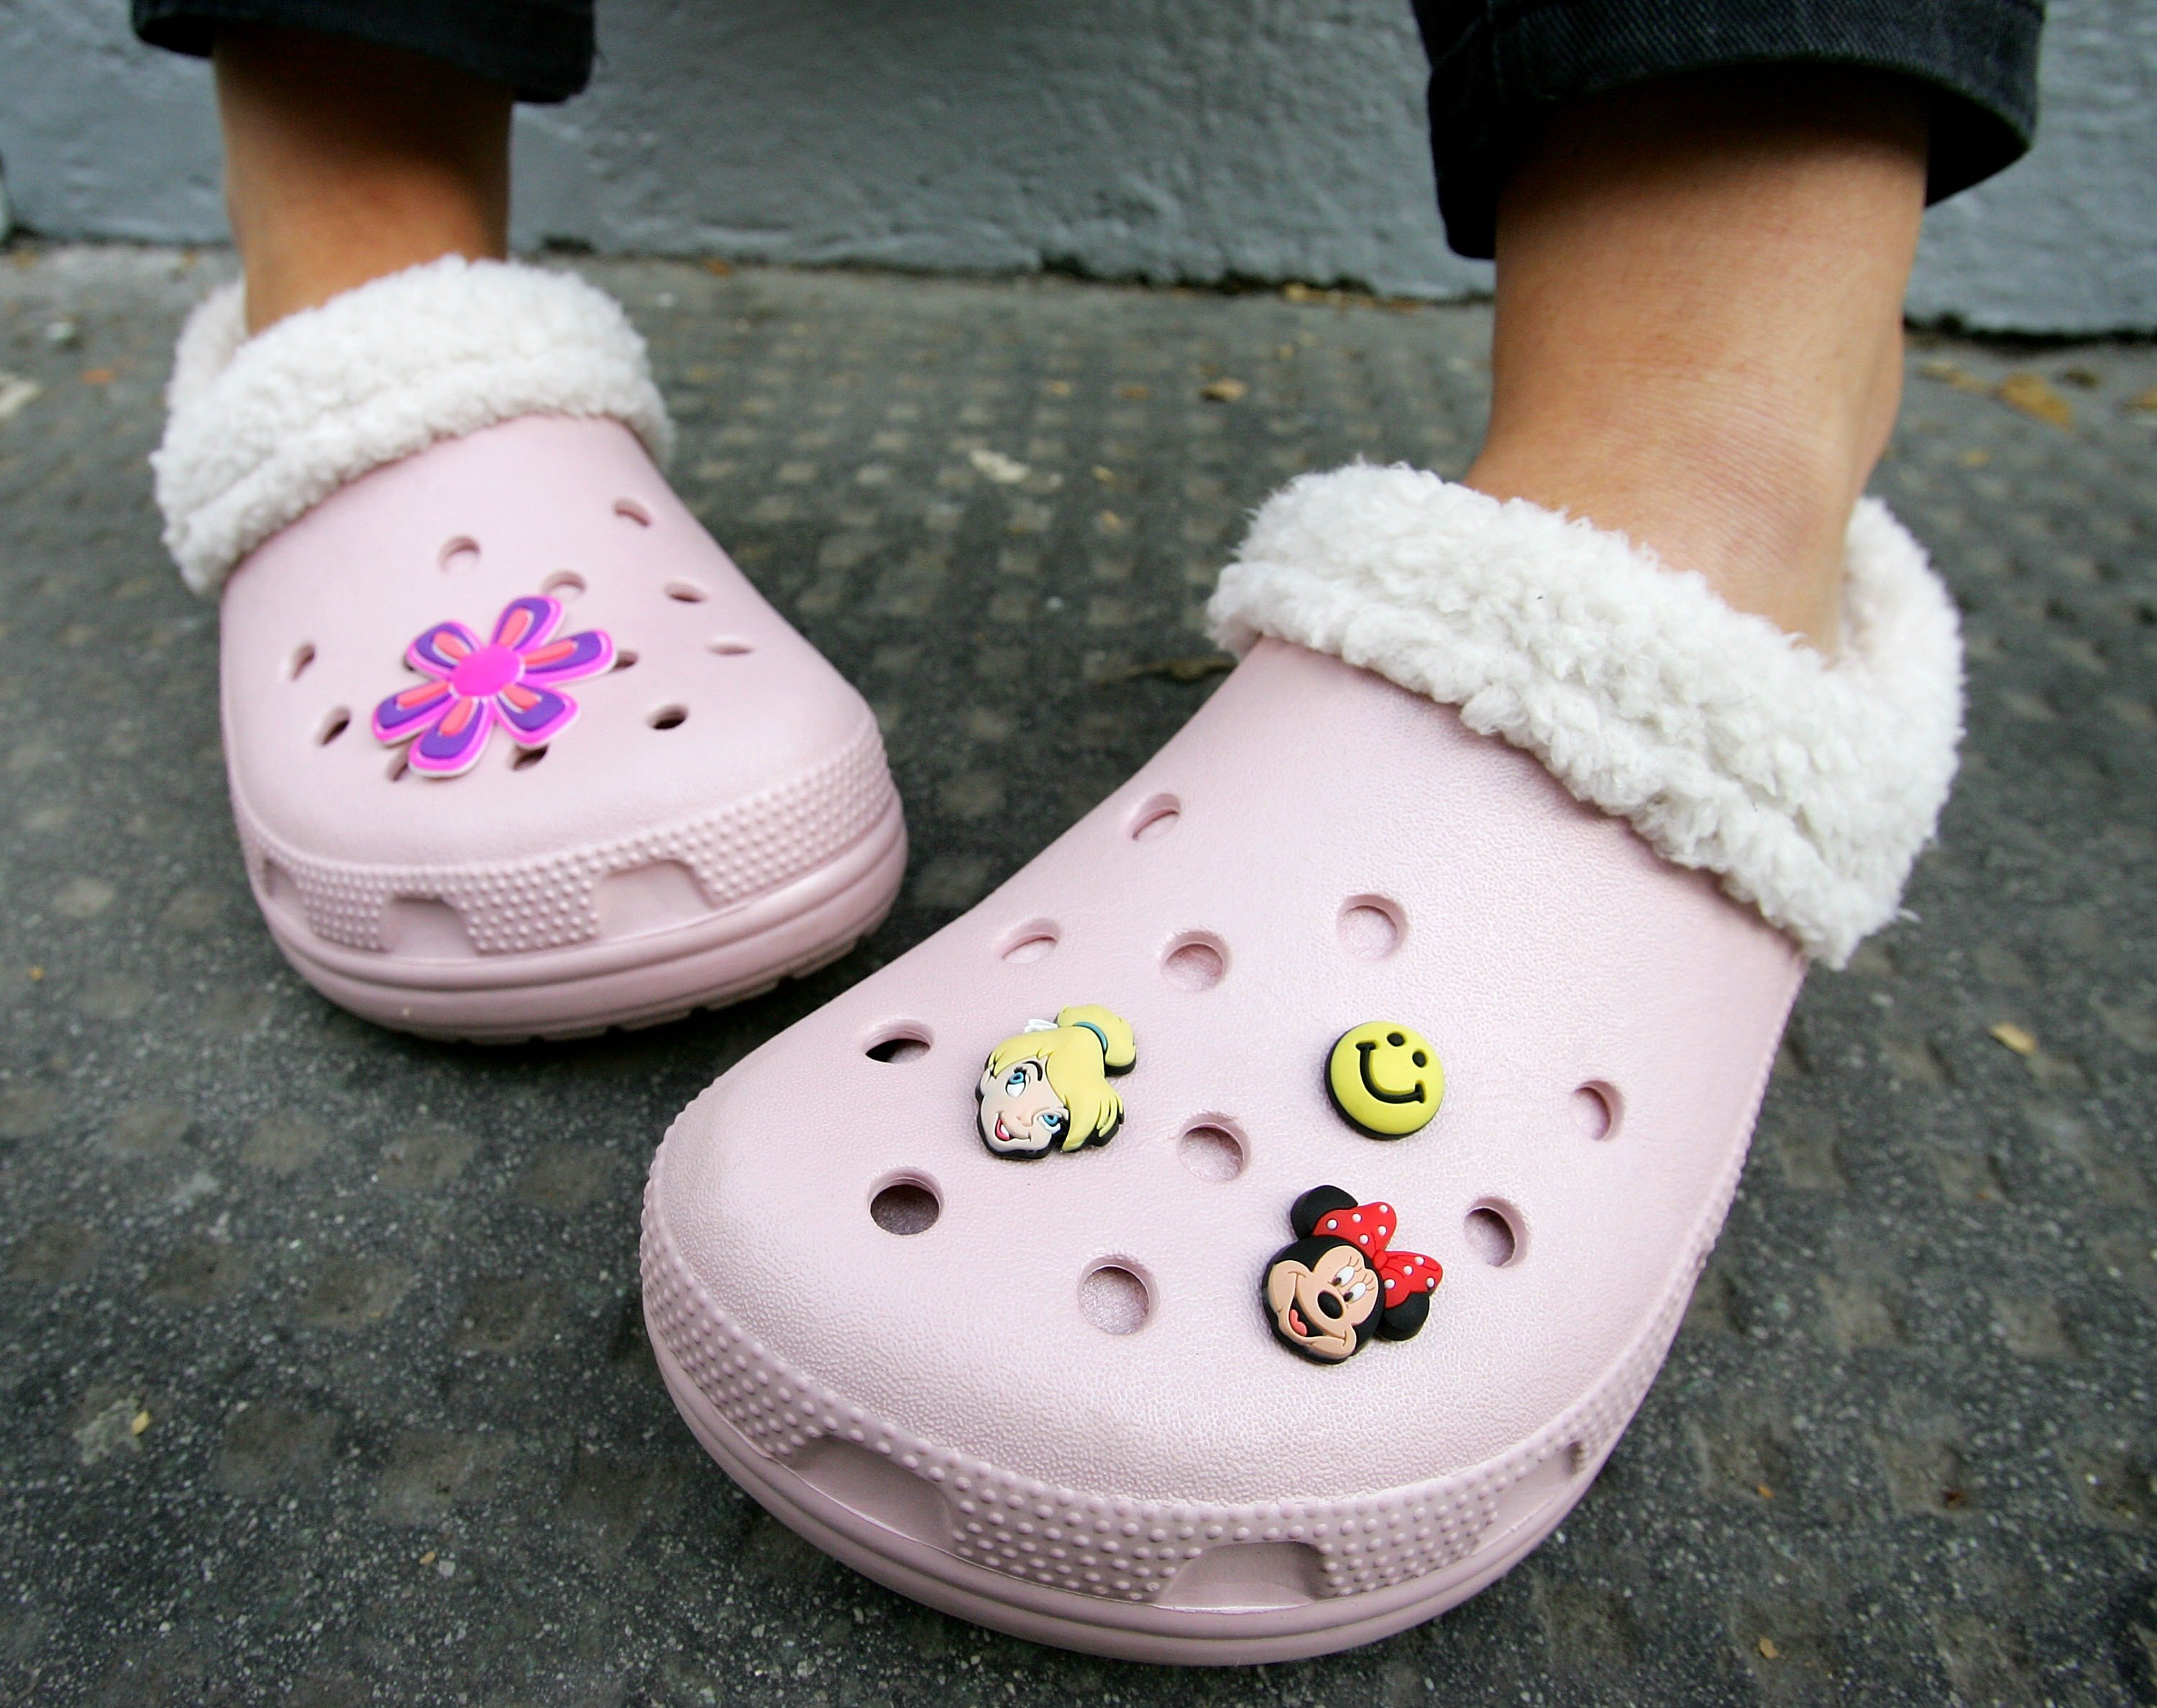 How To Clean Wash Deodorize Crocs And Rubber Sandals Ehow